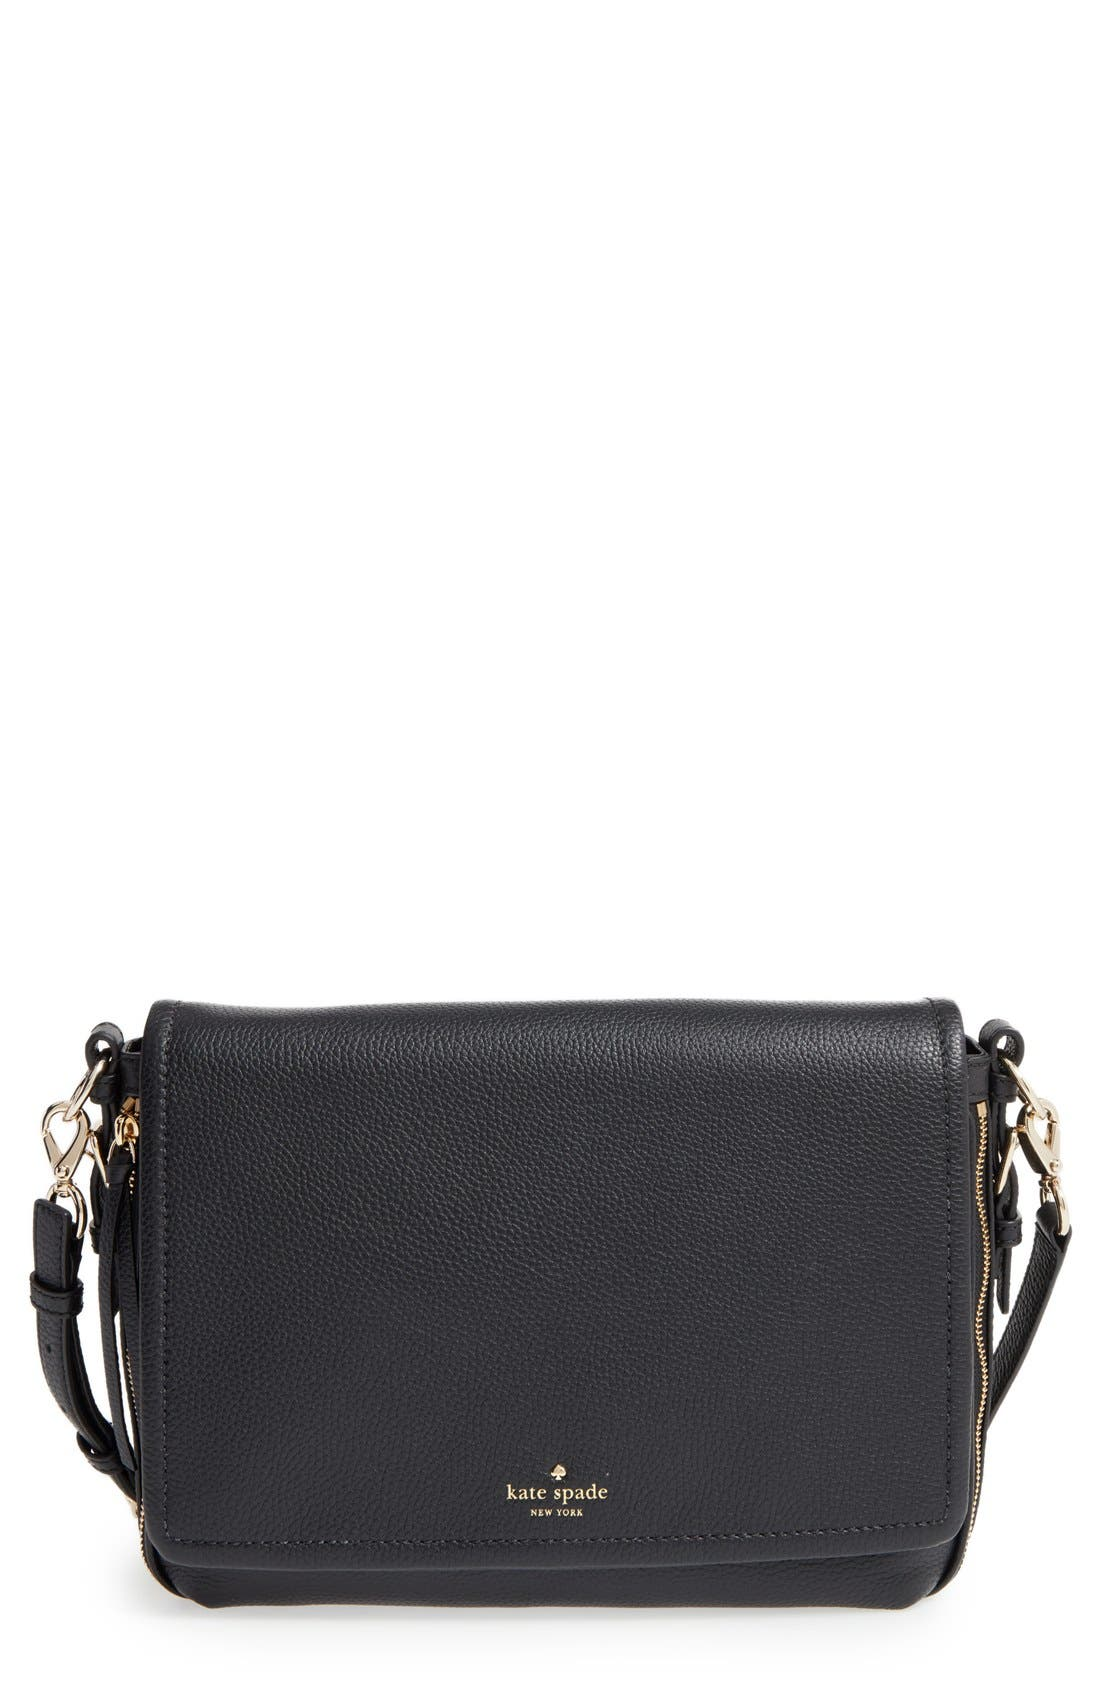 Main Image - kate spade new york cobble hill - mayra leather crossbody bag